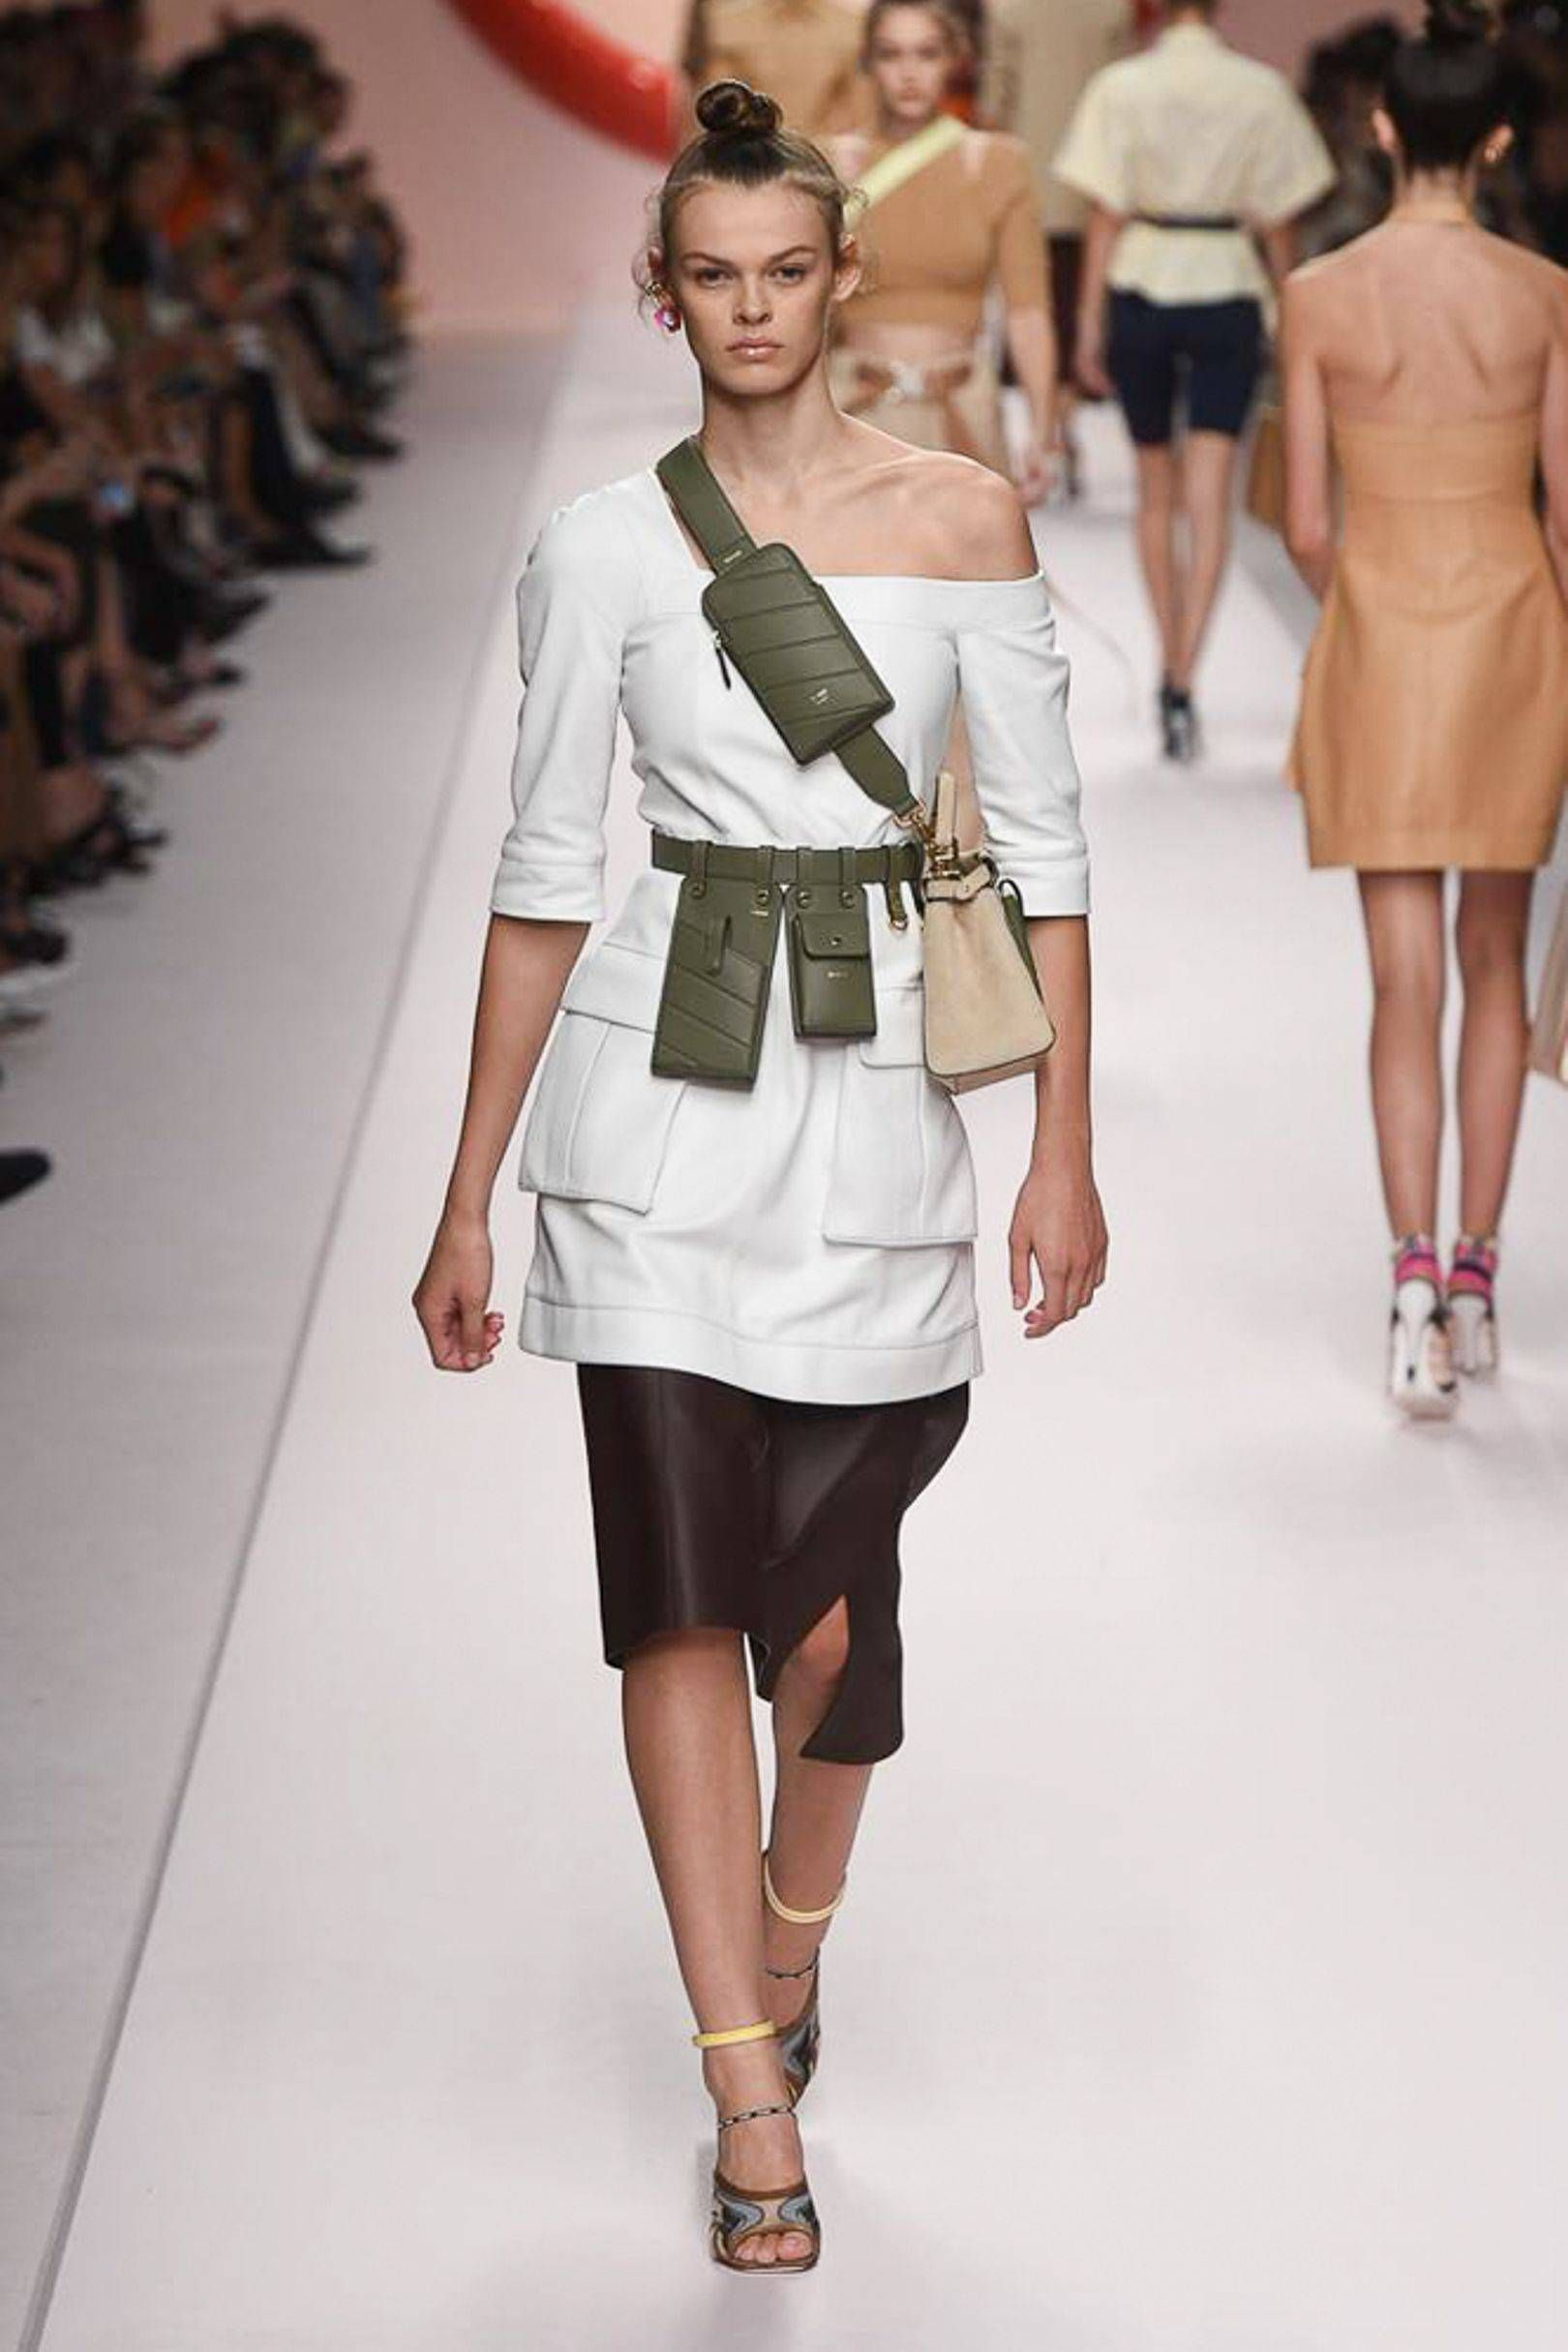 d8caf0edf0 Fendi Spring Summer 2019 Ready-To-Wear Collection